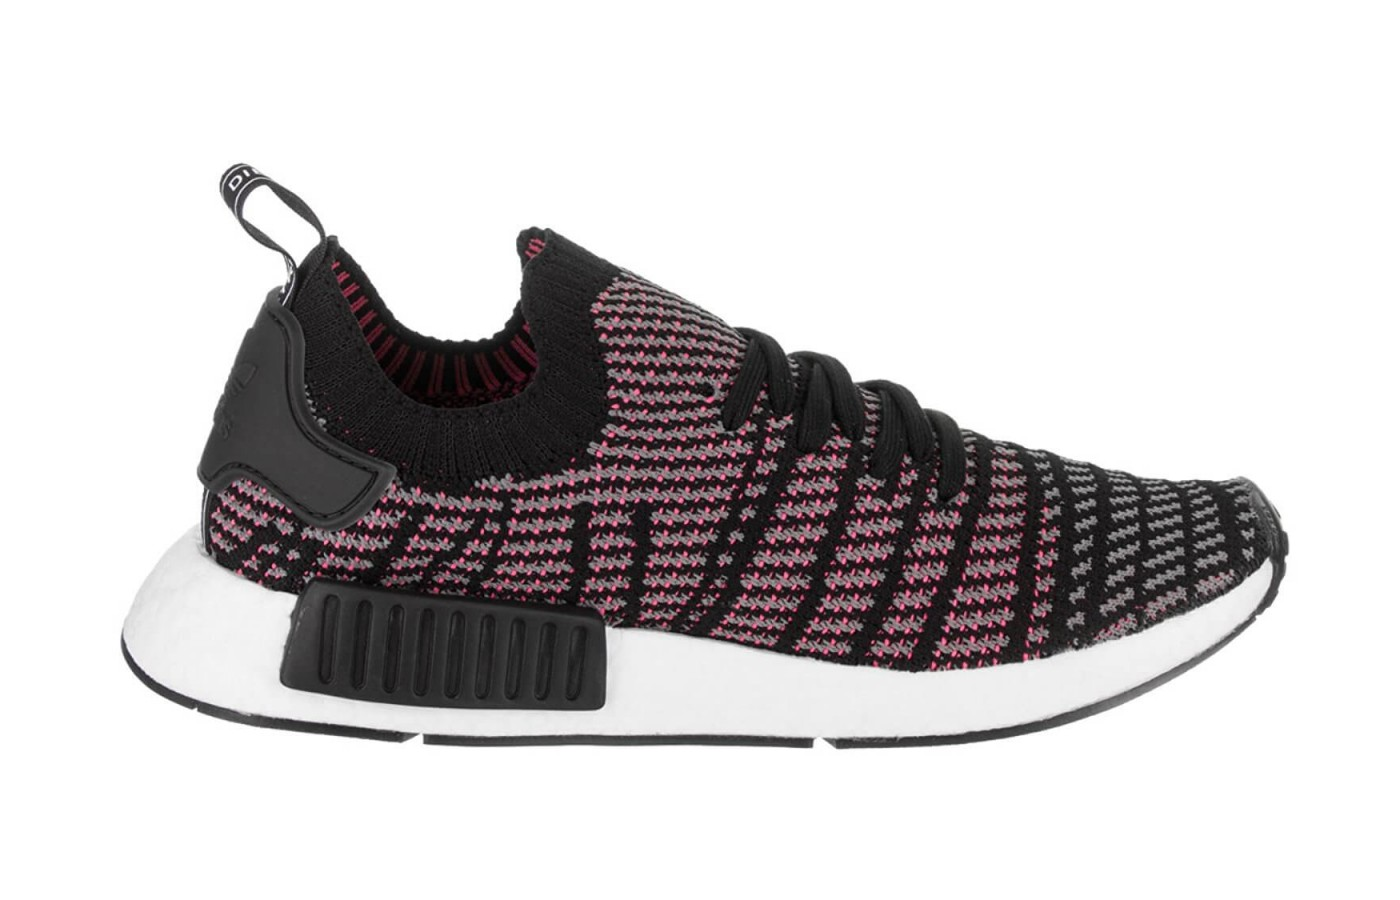 pretty nice b0089 ccd49 ... The Adidas NMD R1 Stlt Primeknit features a Boost midsole ...